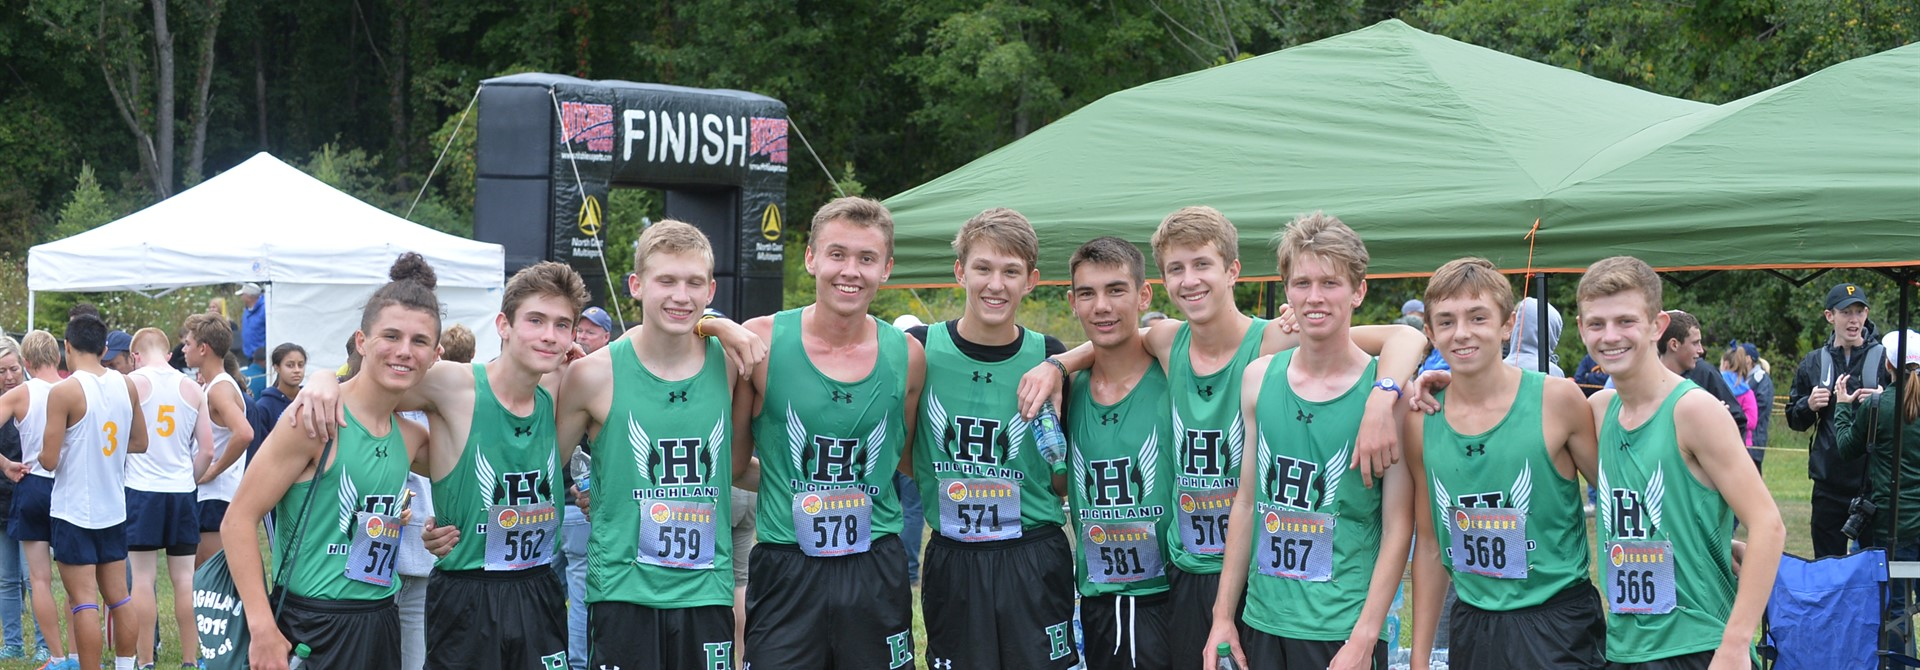 Highland Cross Country Runners